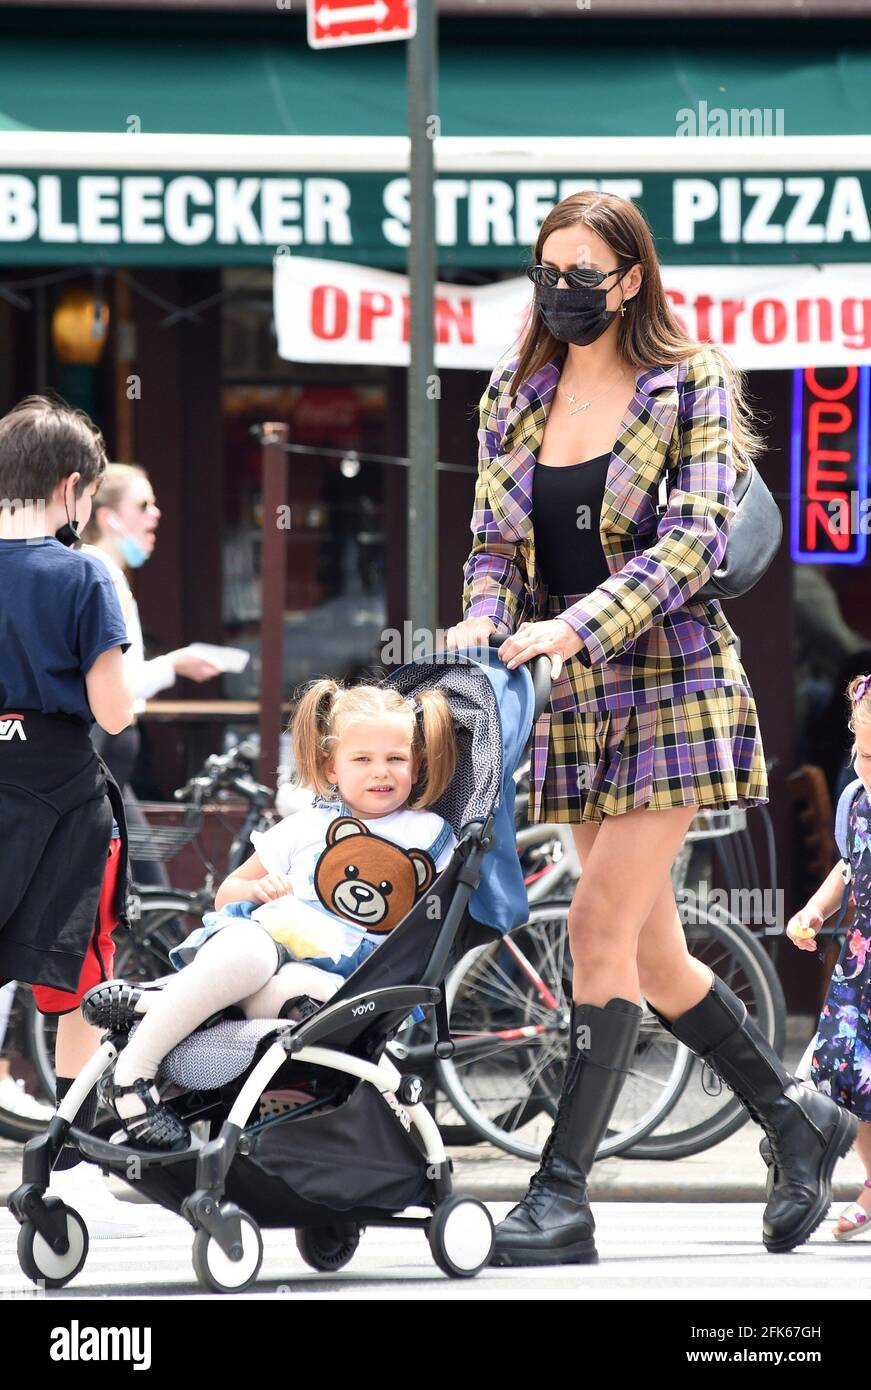 New York, NY, États-Unis. 28 avril 2021. Irina Shayk Out and About for Celebrity candids - WED, New York, NY 28 avril 2021. Crédit : Kristin Callahan/Everett Collection/Alay Live News Banque D'Images